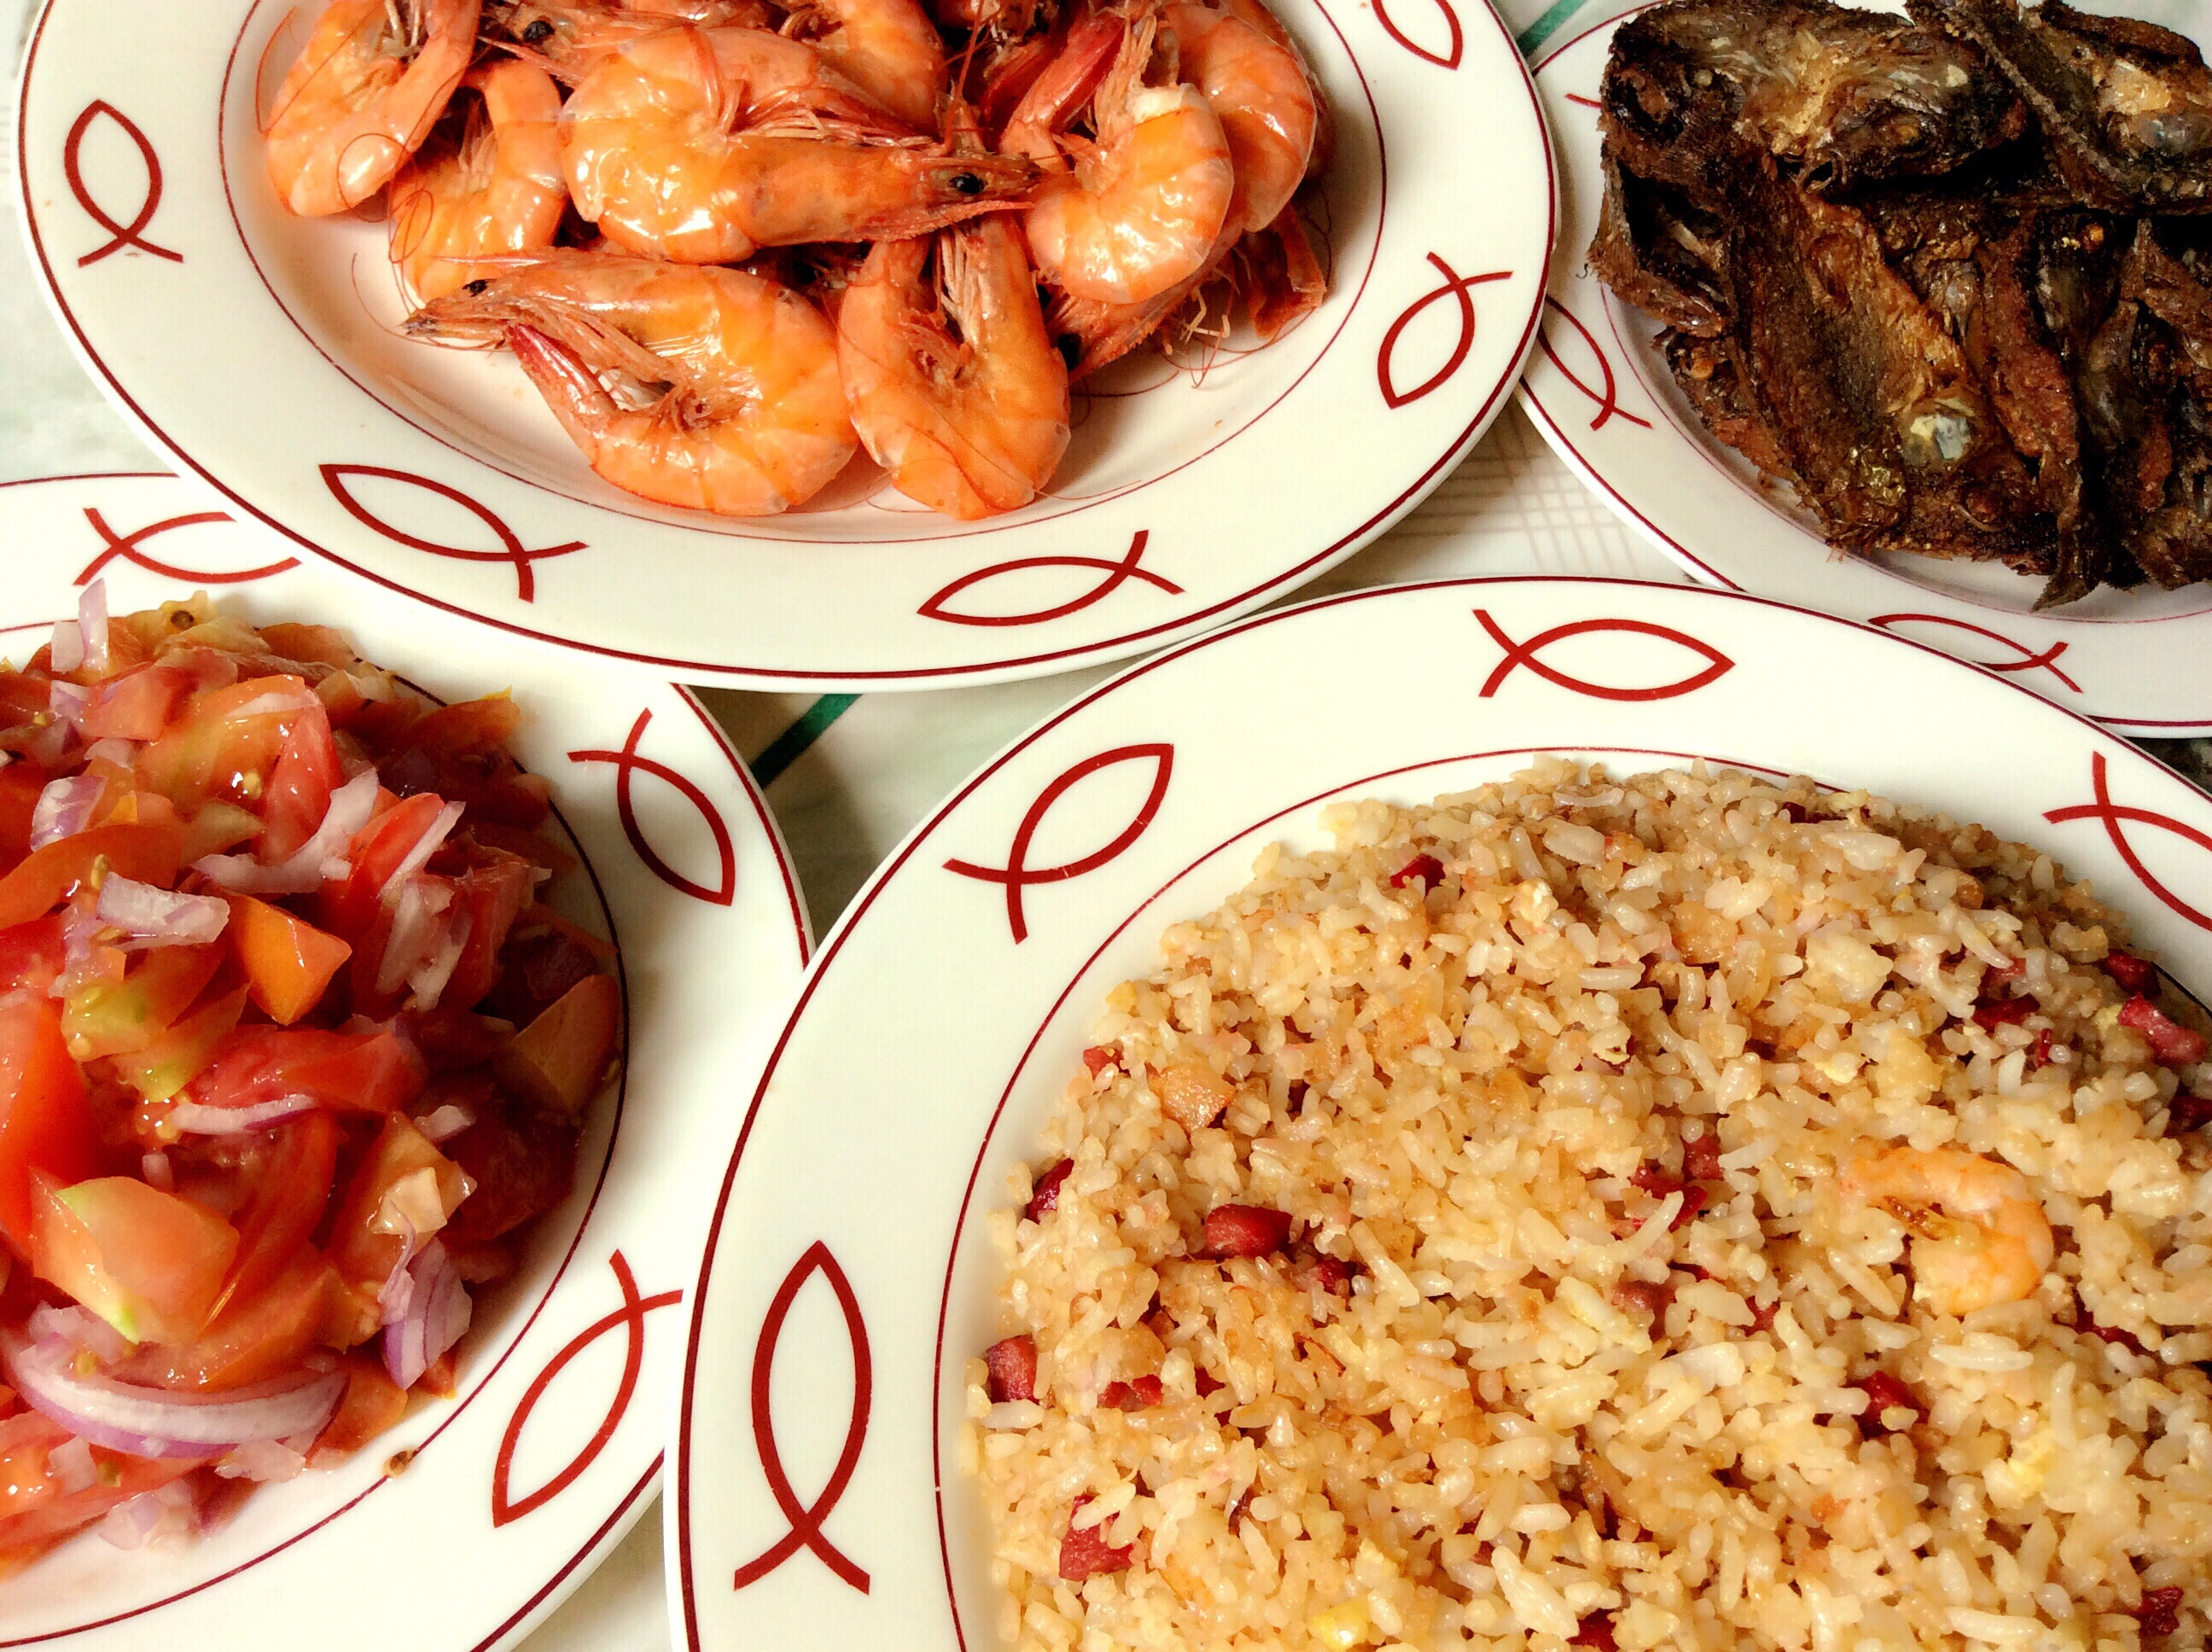 PINOY FOOD DELIGHT COMBO 17 | Pinoy Food Delight